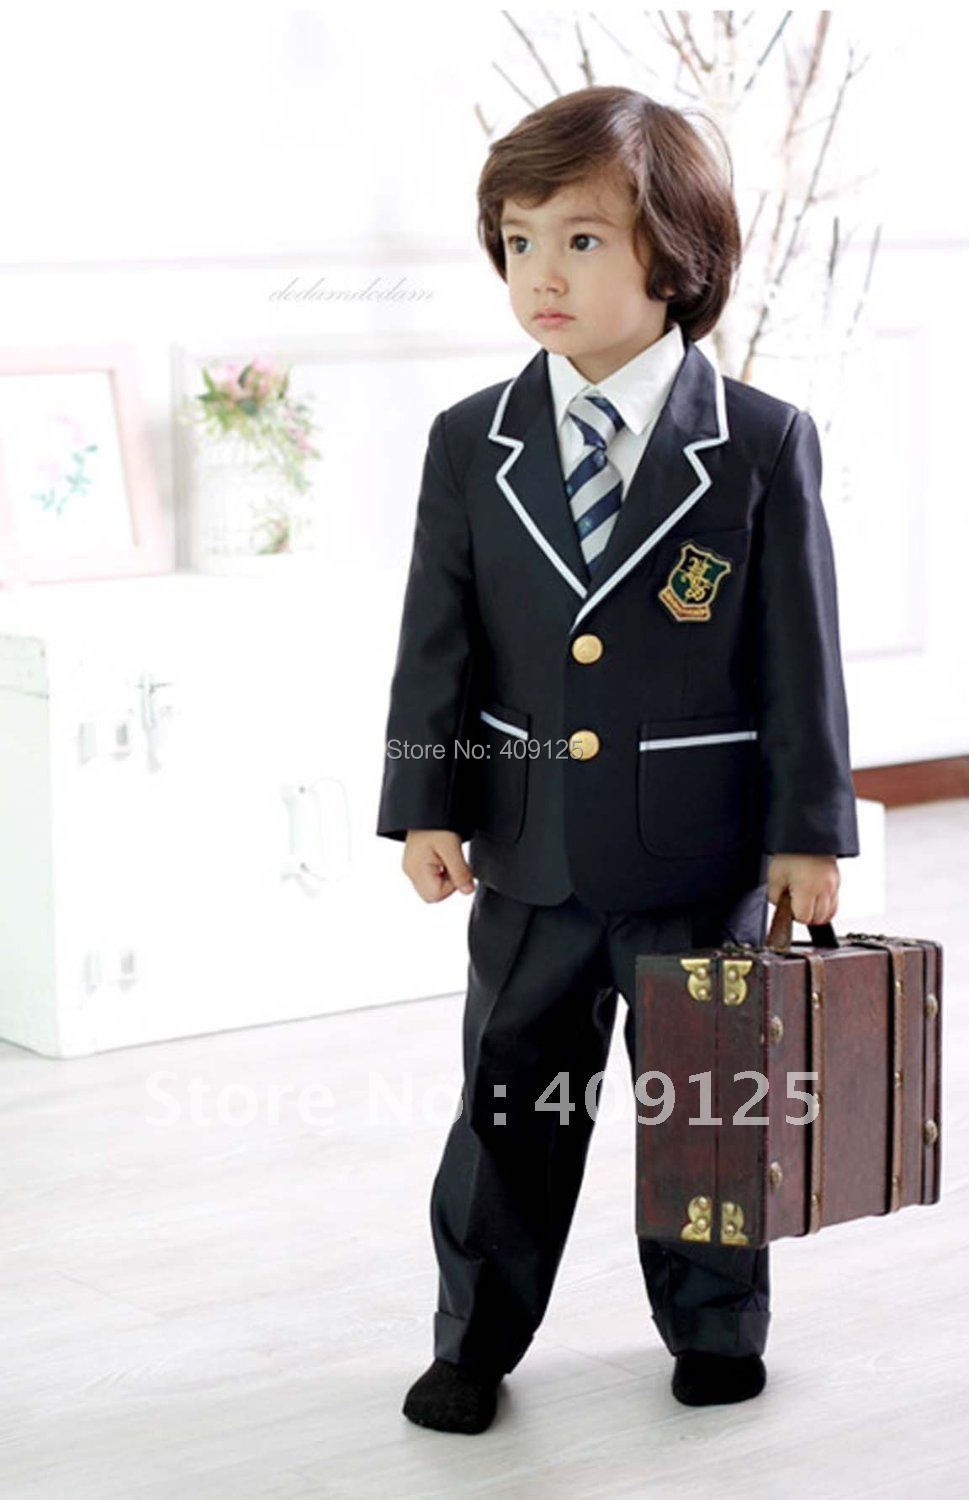 Toddler Suits for Weddings | Dress images